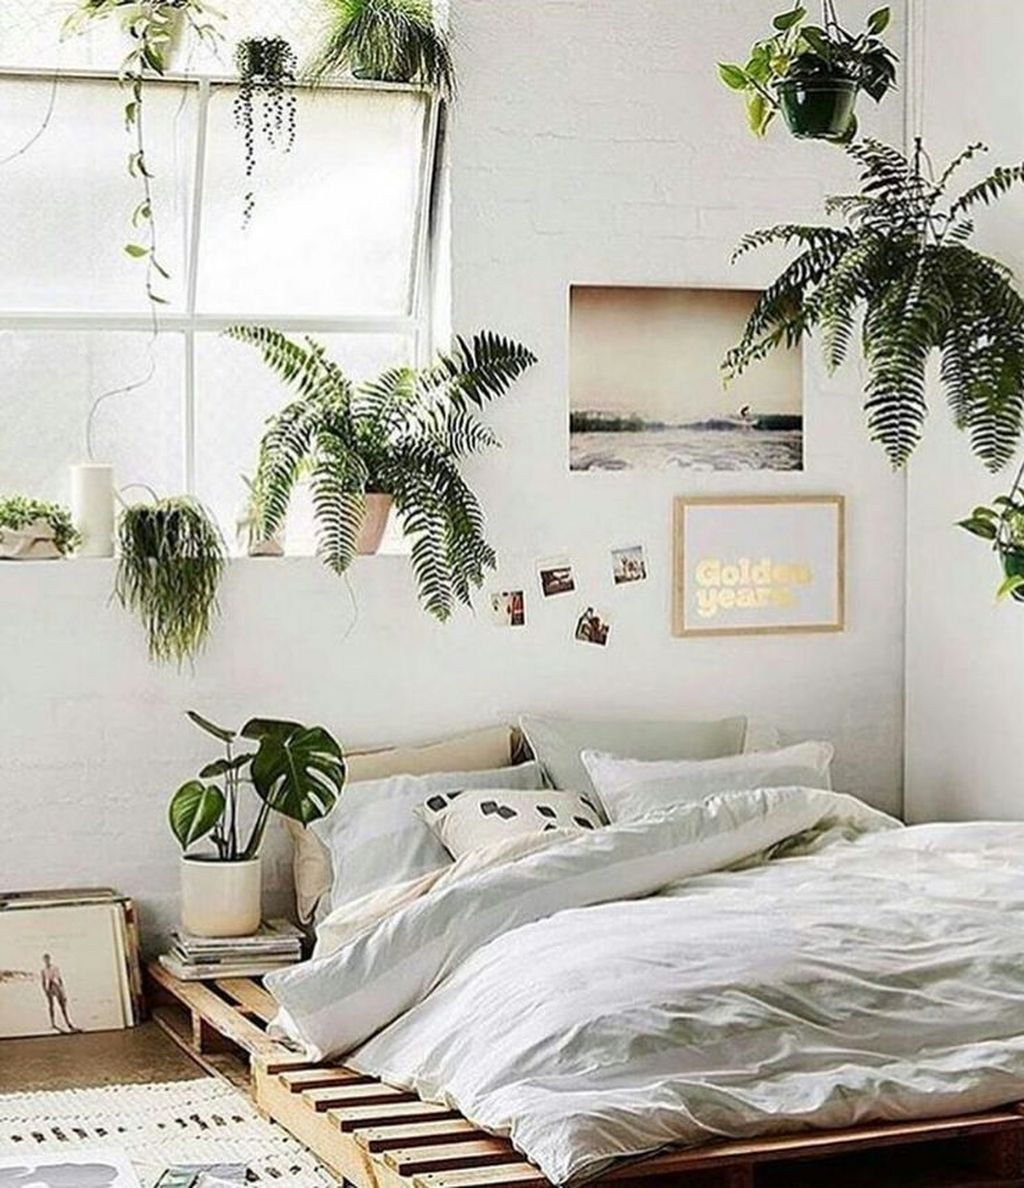 45 inspiring plants ideas in bedroom decor | minimalist